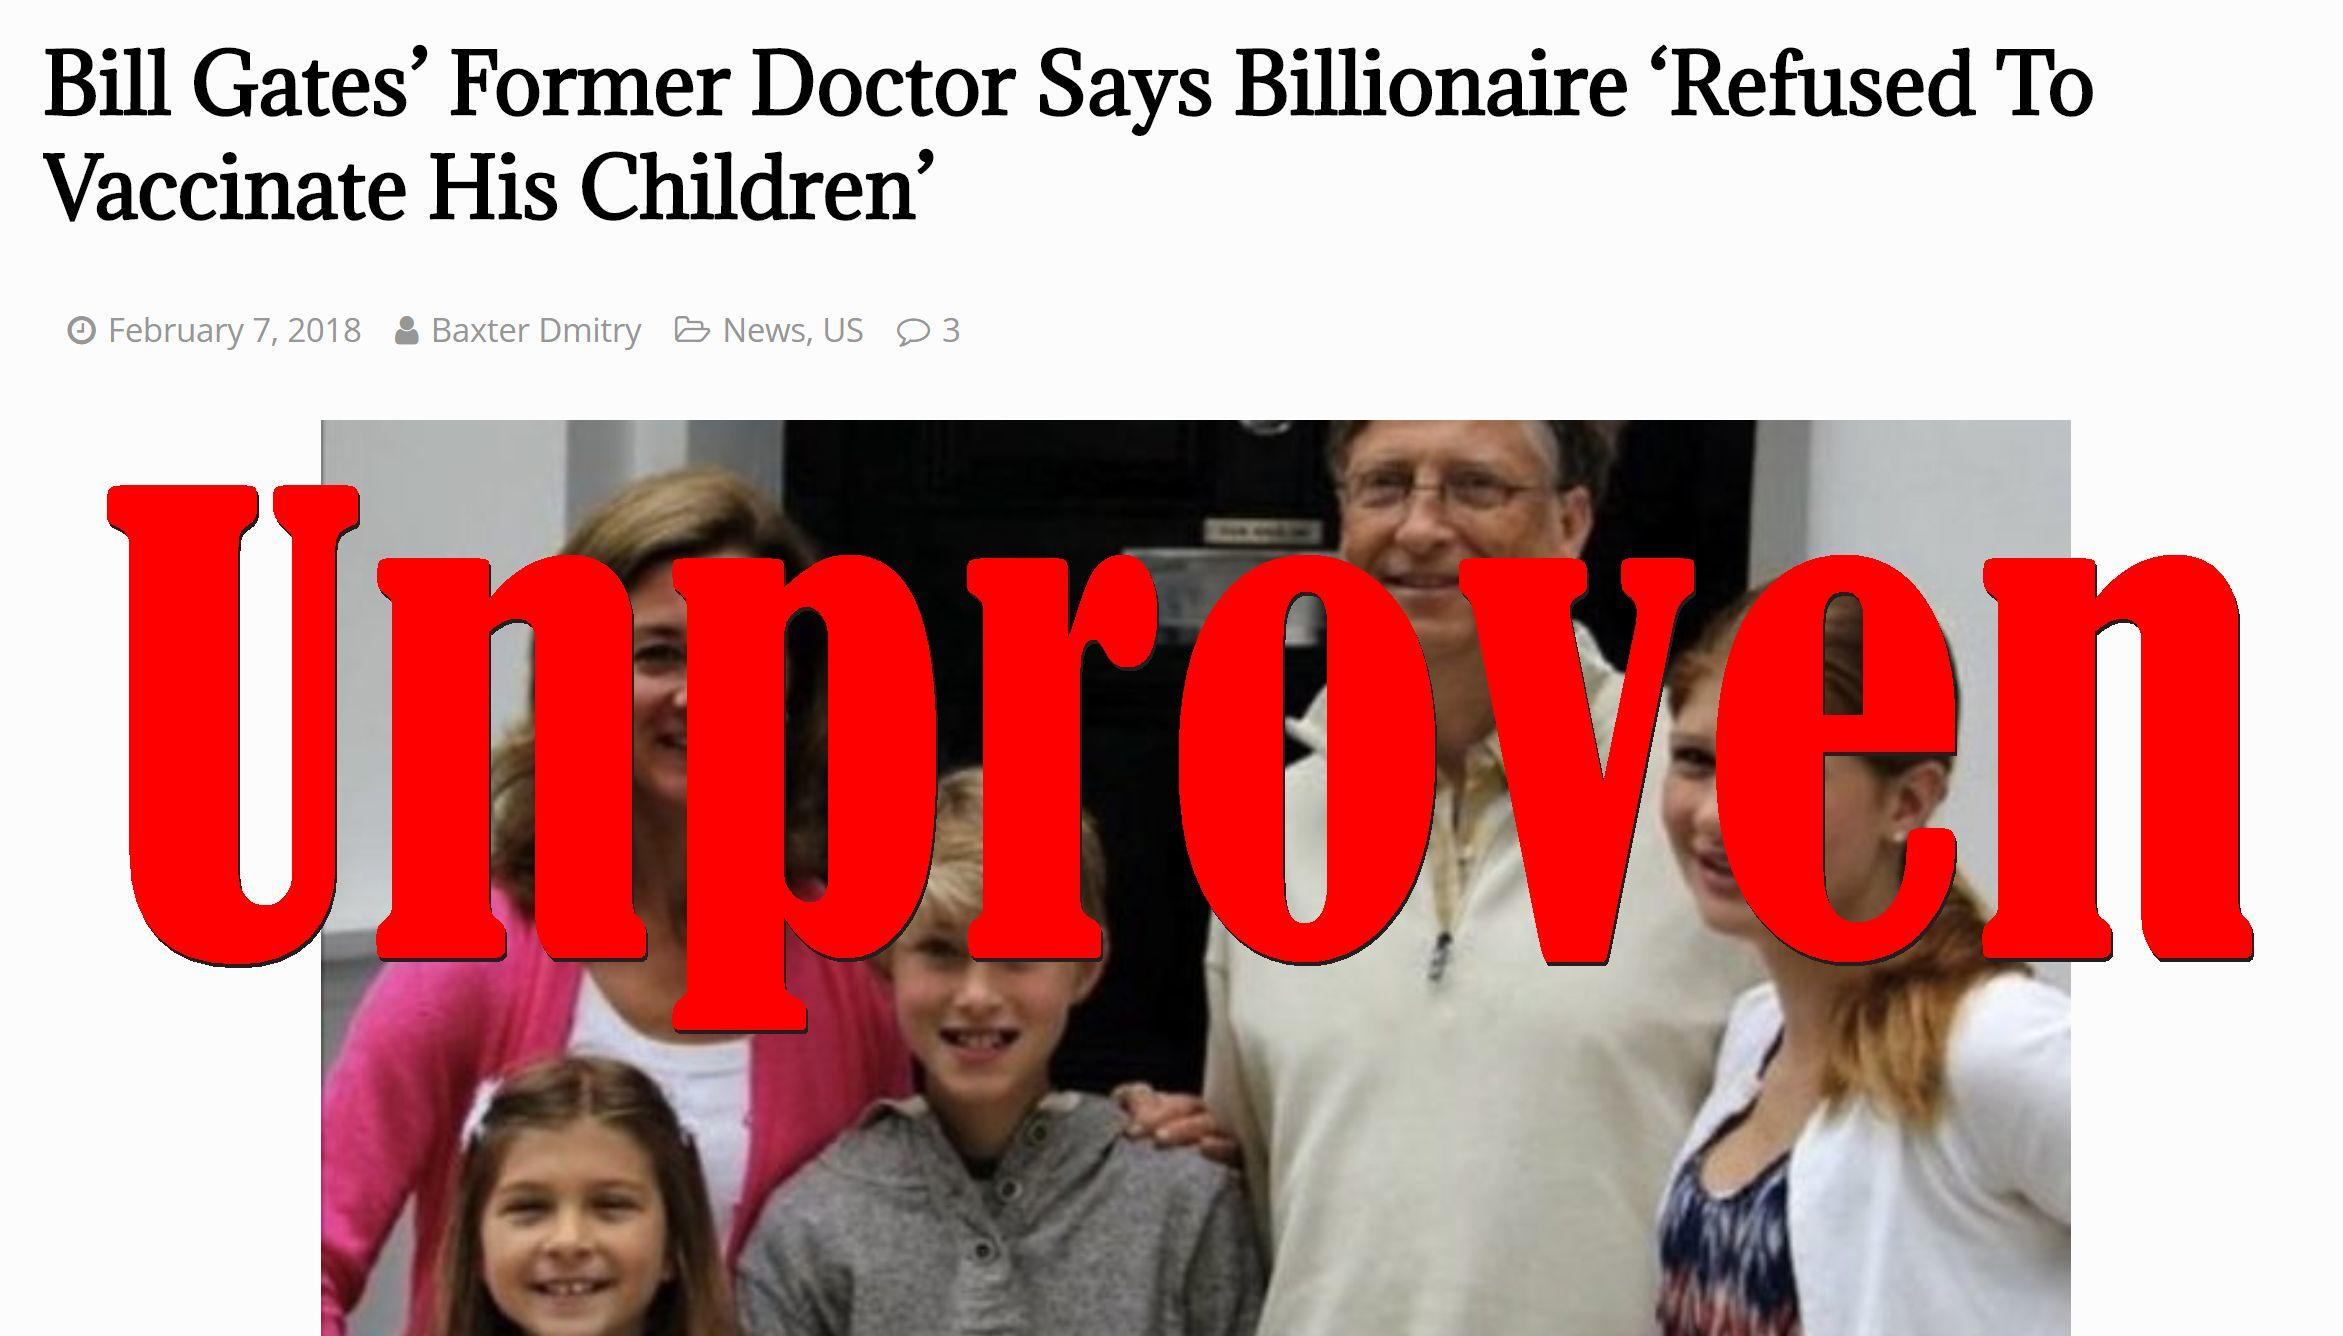 Fake News Former Bill Gates Doctor Did Not Say Billionaire Refused